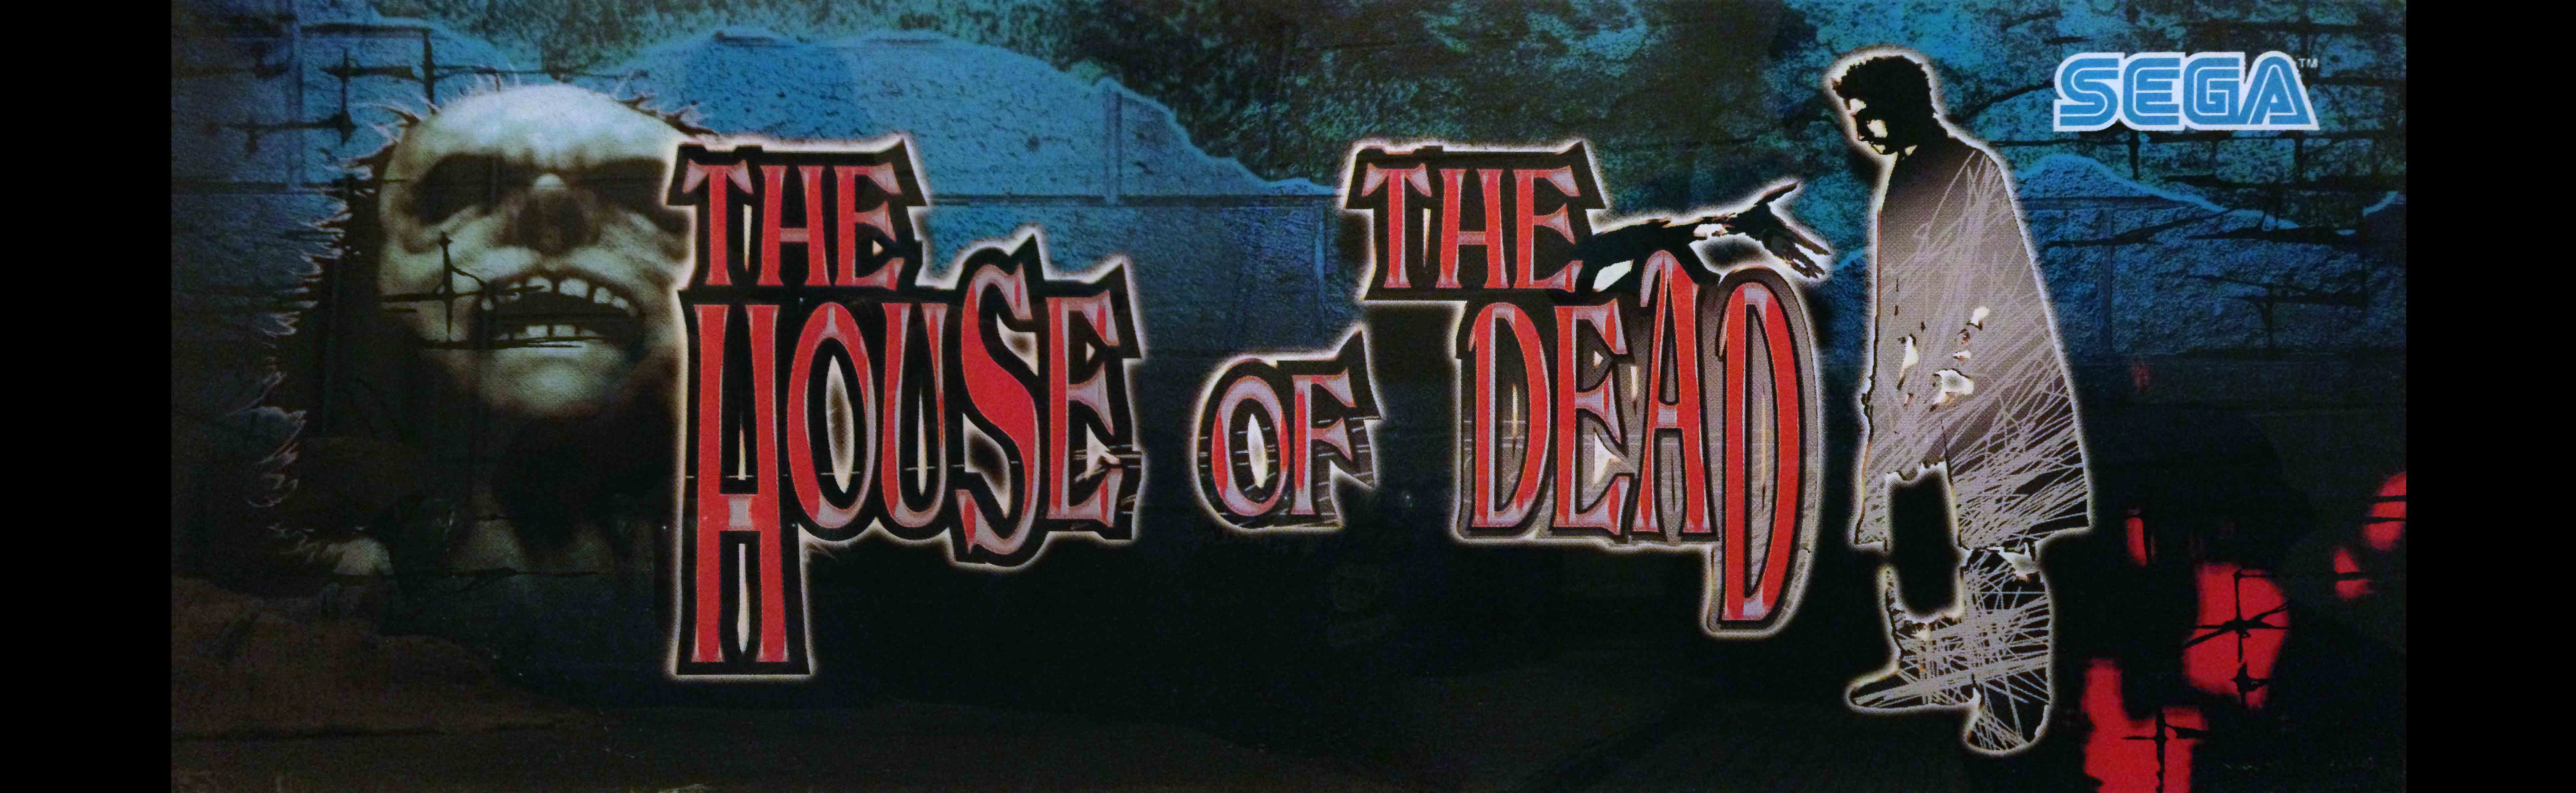 The house of the dead arcade marquee 26 x 8 for Housse of the dead